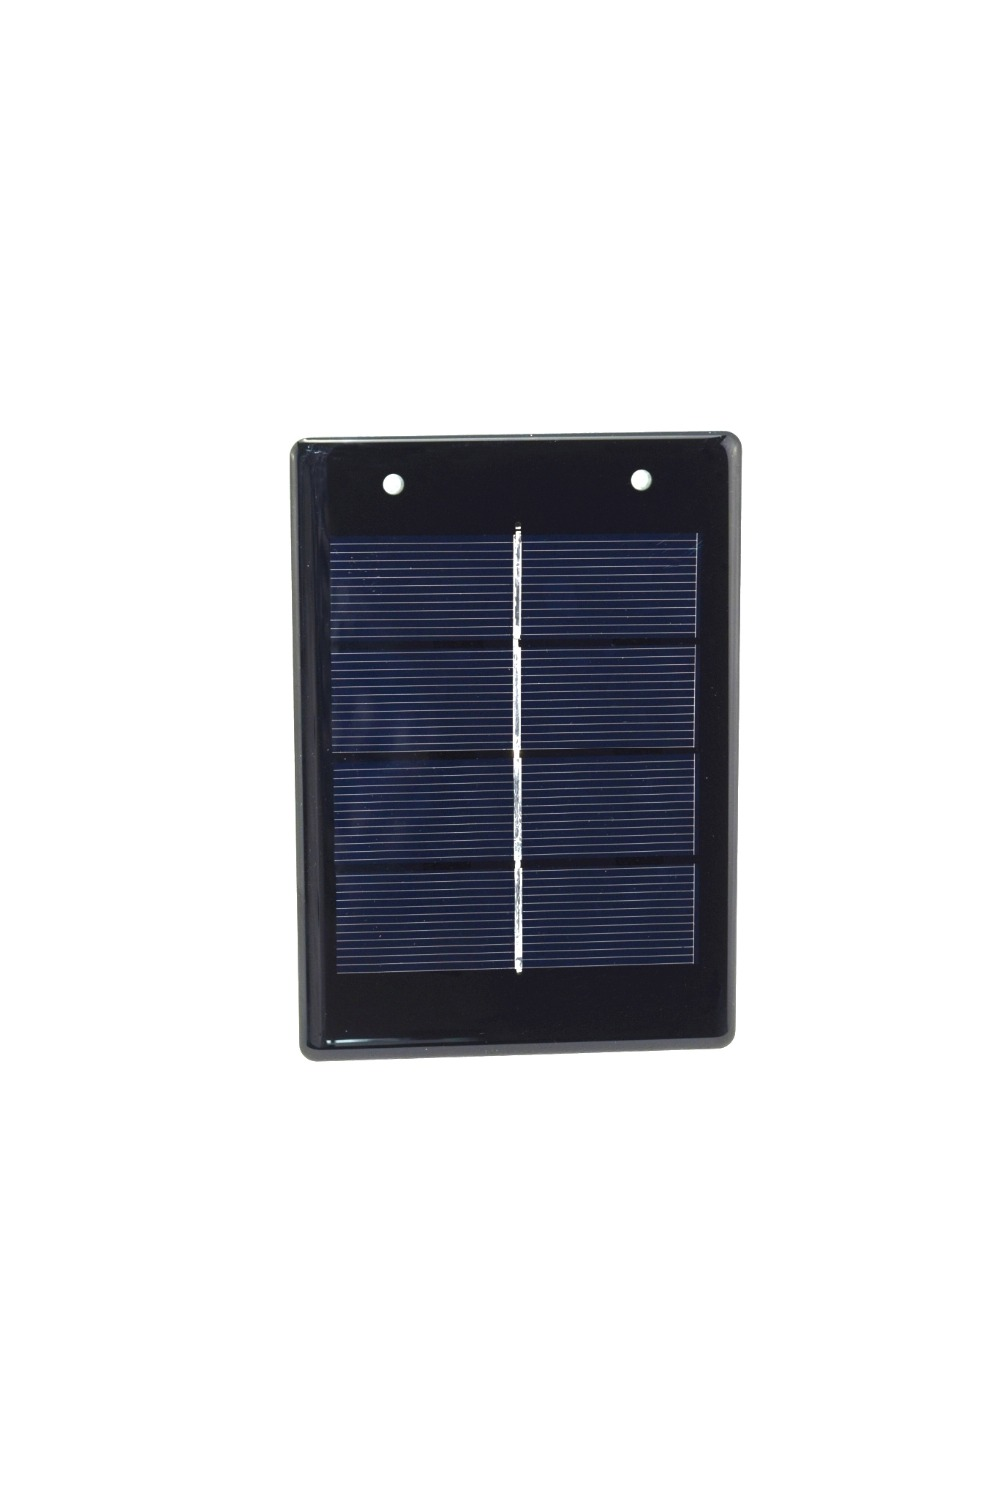 10pcs 2V 600mA Epoxy Resin Polycrystalline Solar Modules, High Quality and Low Price(China (Mainland))